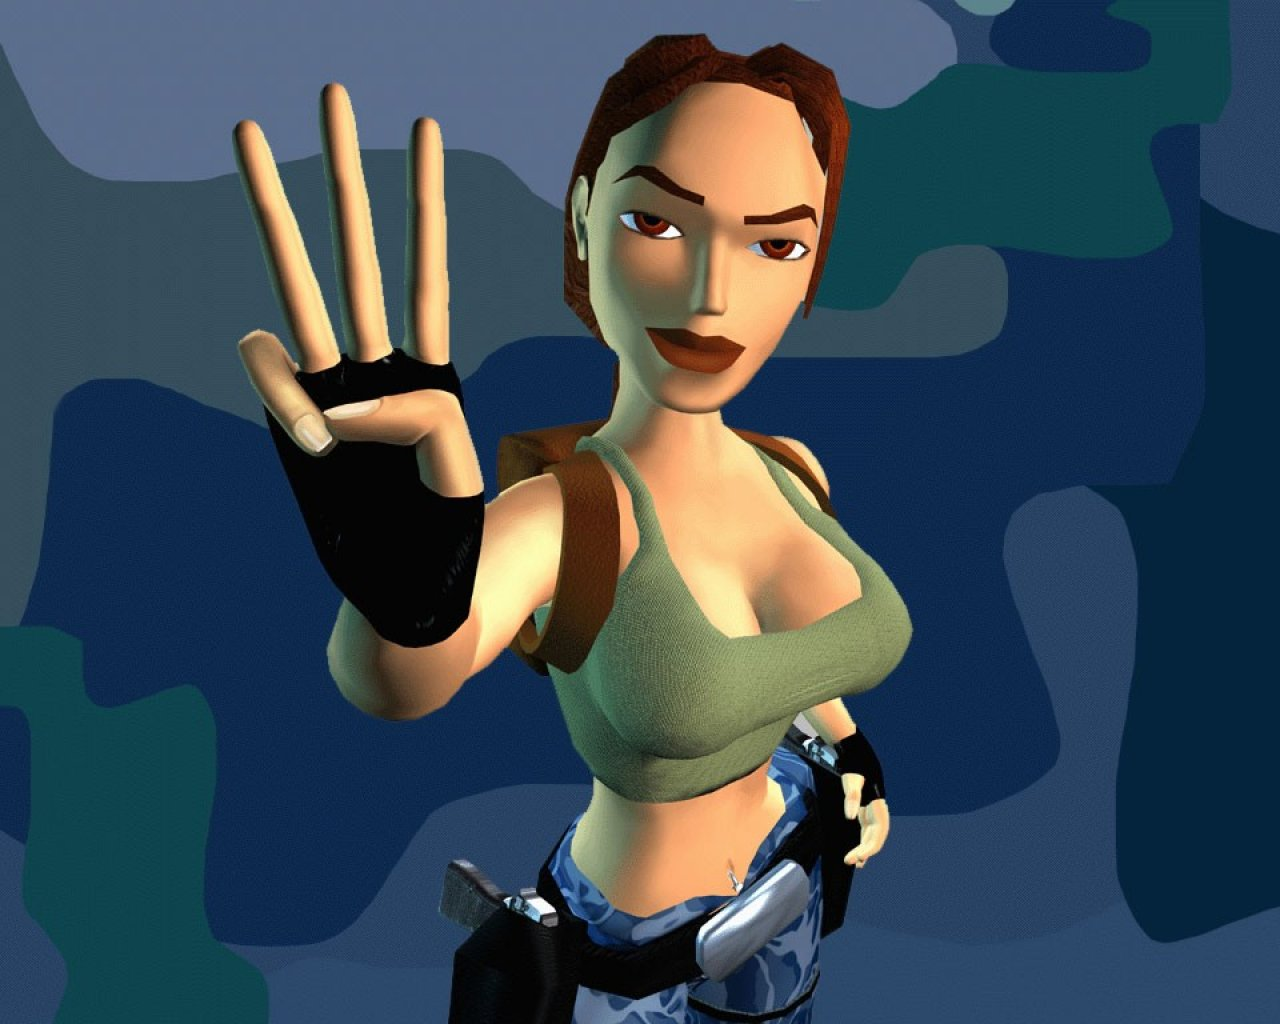 Lara croft old game adult download